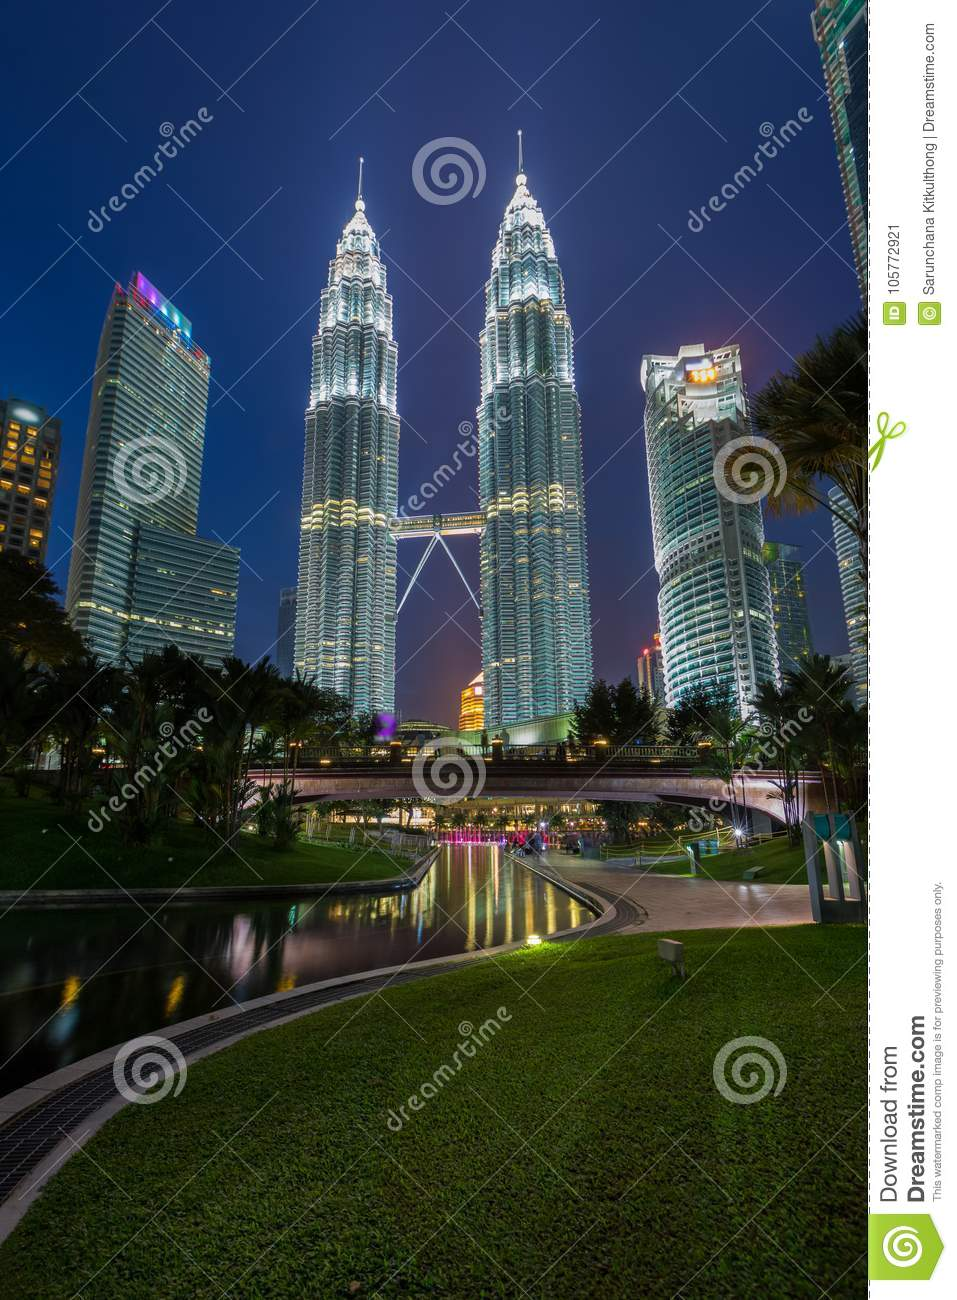 KUALA LUMPUR, MALAYSIA JULY 15: Night view of Petronas Twin Towers (fondly known as KLCC) and the surrounding buildings at during